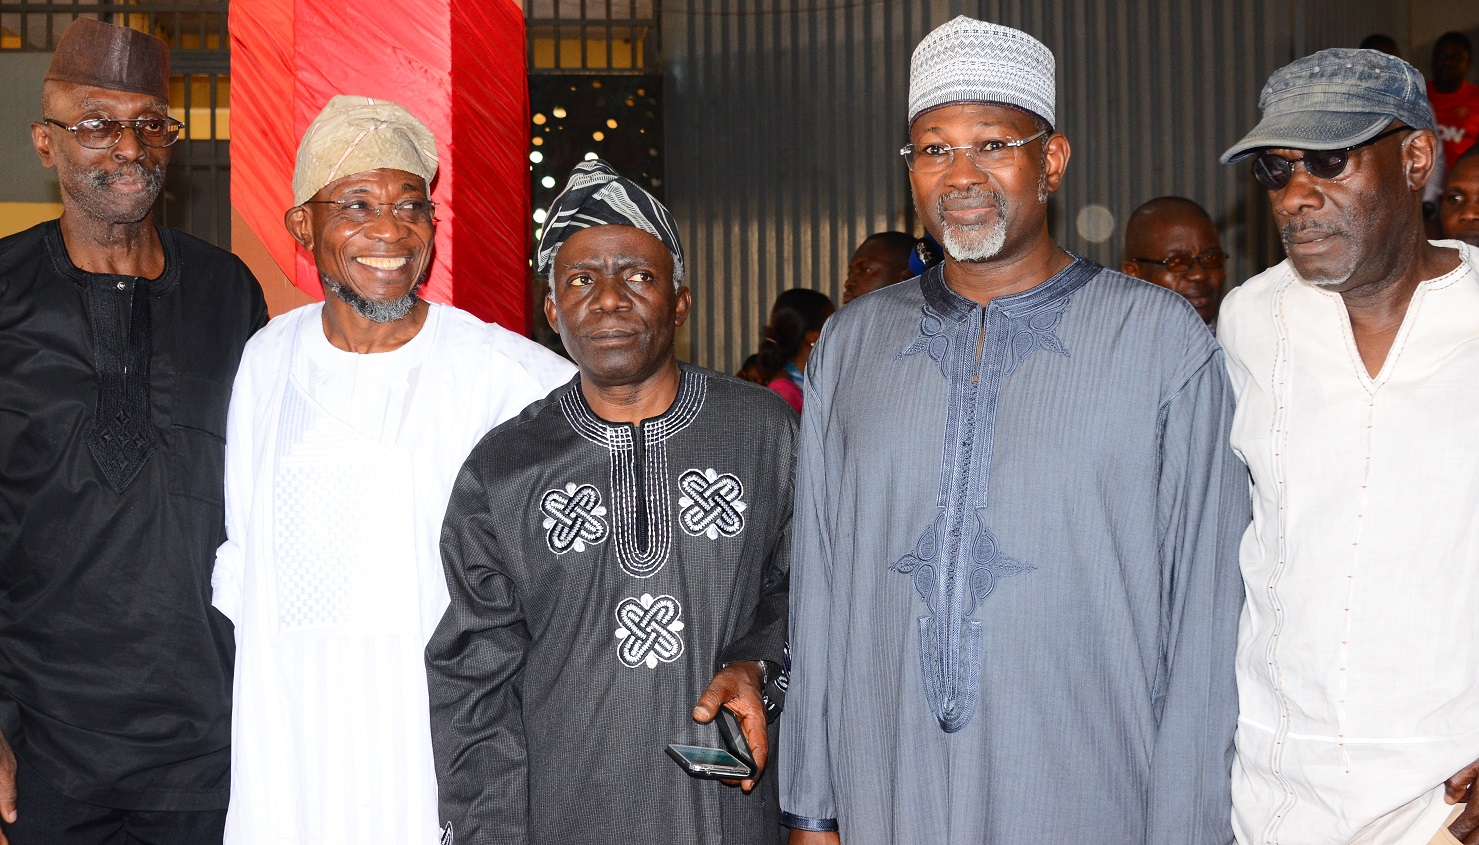 From Left- First President, Academic Staff Union of Universities {ASUU},Professor Biodun Jeyifo, Governor State of Osun, Ogbeni Rauf Aregbesola, Chairman of the Occasion, Barrister Femi Falana (SAN), Keynote Speaker, Professor Attahiru Jega,and Professor Kole Omotoso during the 70th Birthday of Prof. Biodun Jeyifo, at the International Conference  Centre, Obafemi Awolowo University, Ile-Ife on Thursday 20/01/2016.